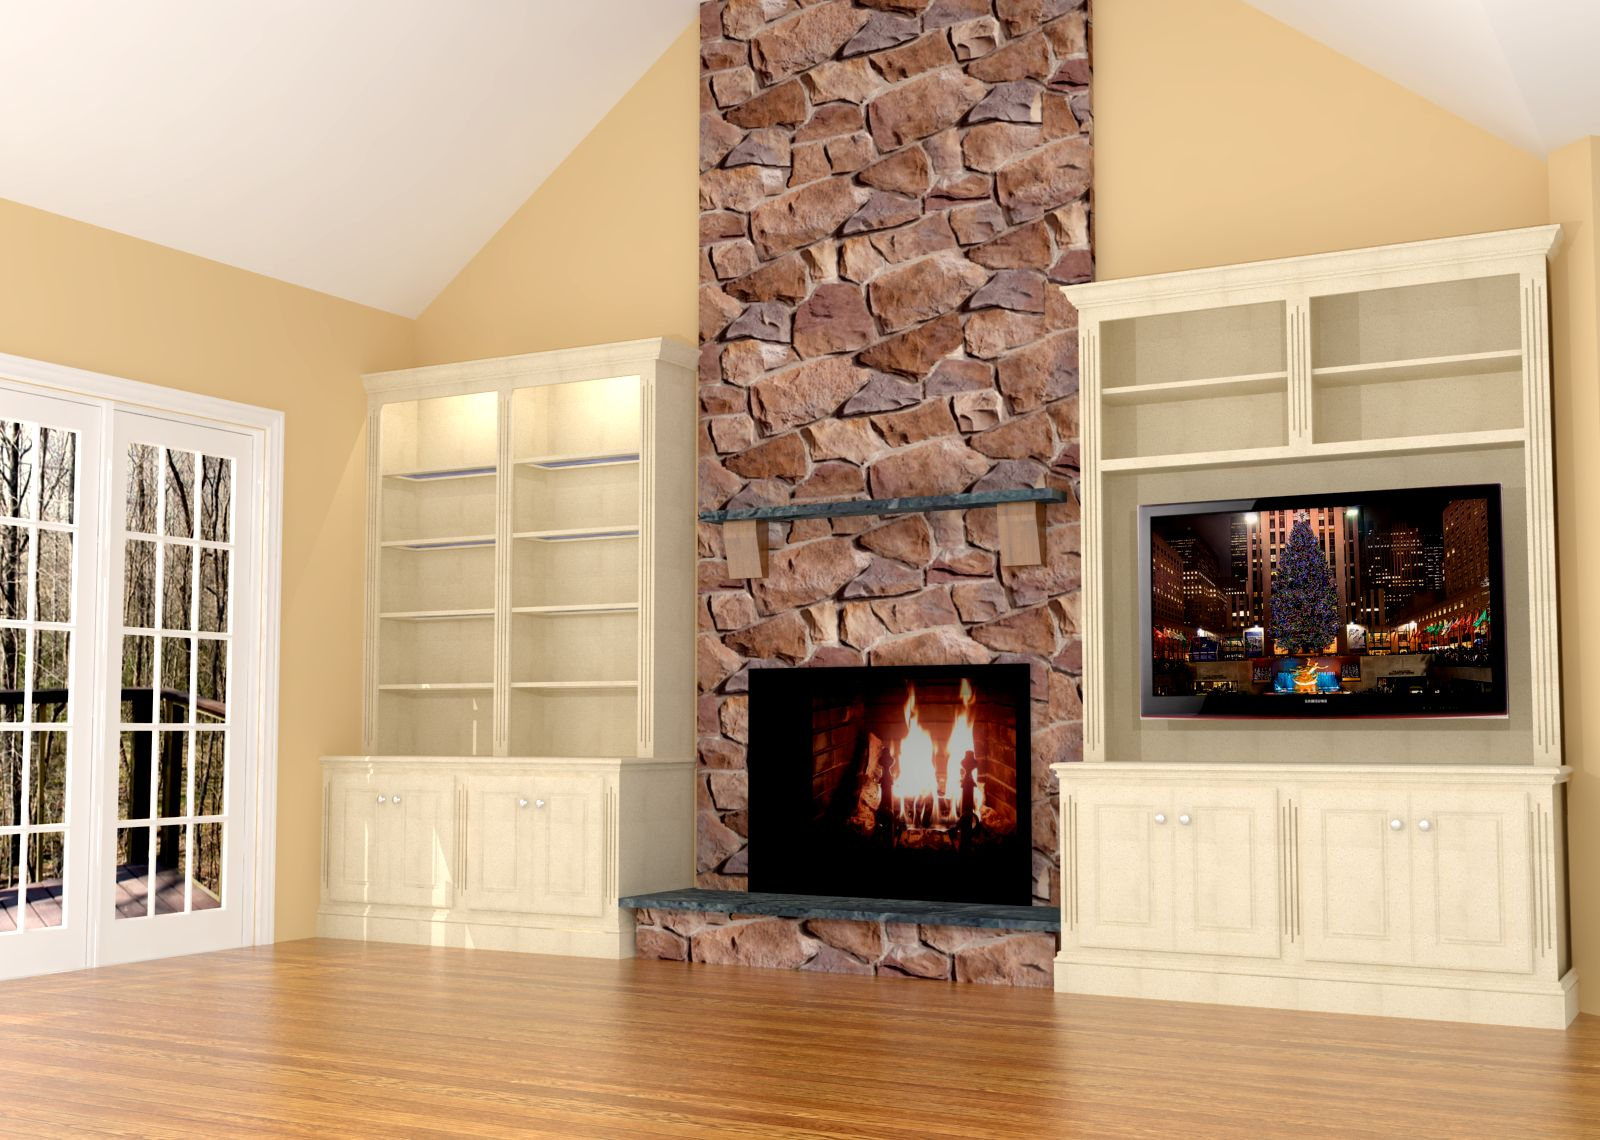 Camino Bioetanolo Yahoo Fireplace Wall Built-ins W/led Tv | Nick Miller Design